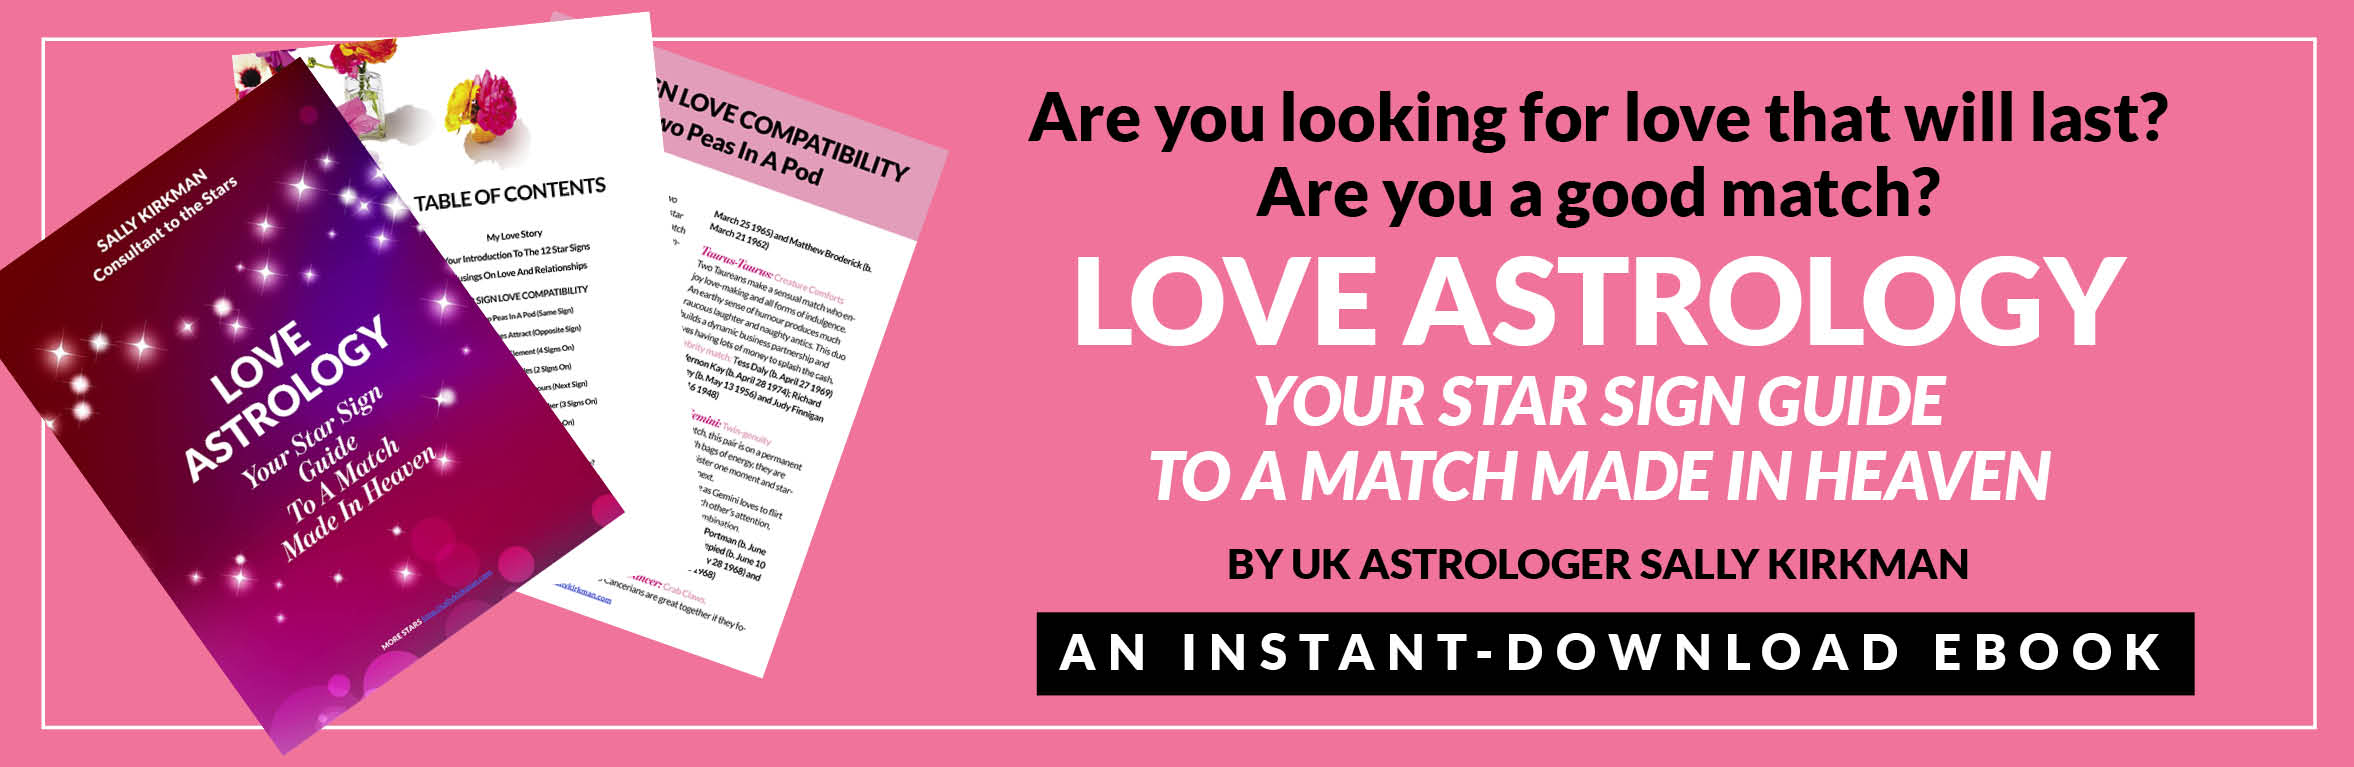 What love astrology can teach you yasmin bolands moonology what love astrology can teach you geenschuldenfo Gallery